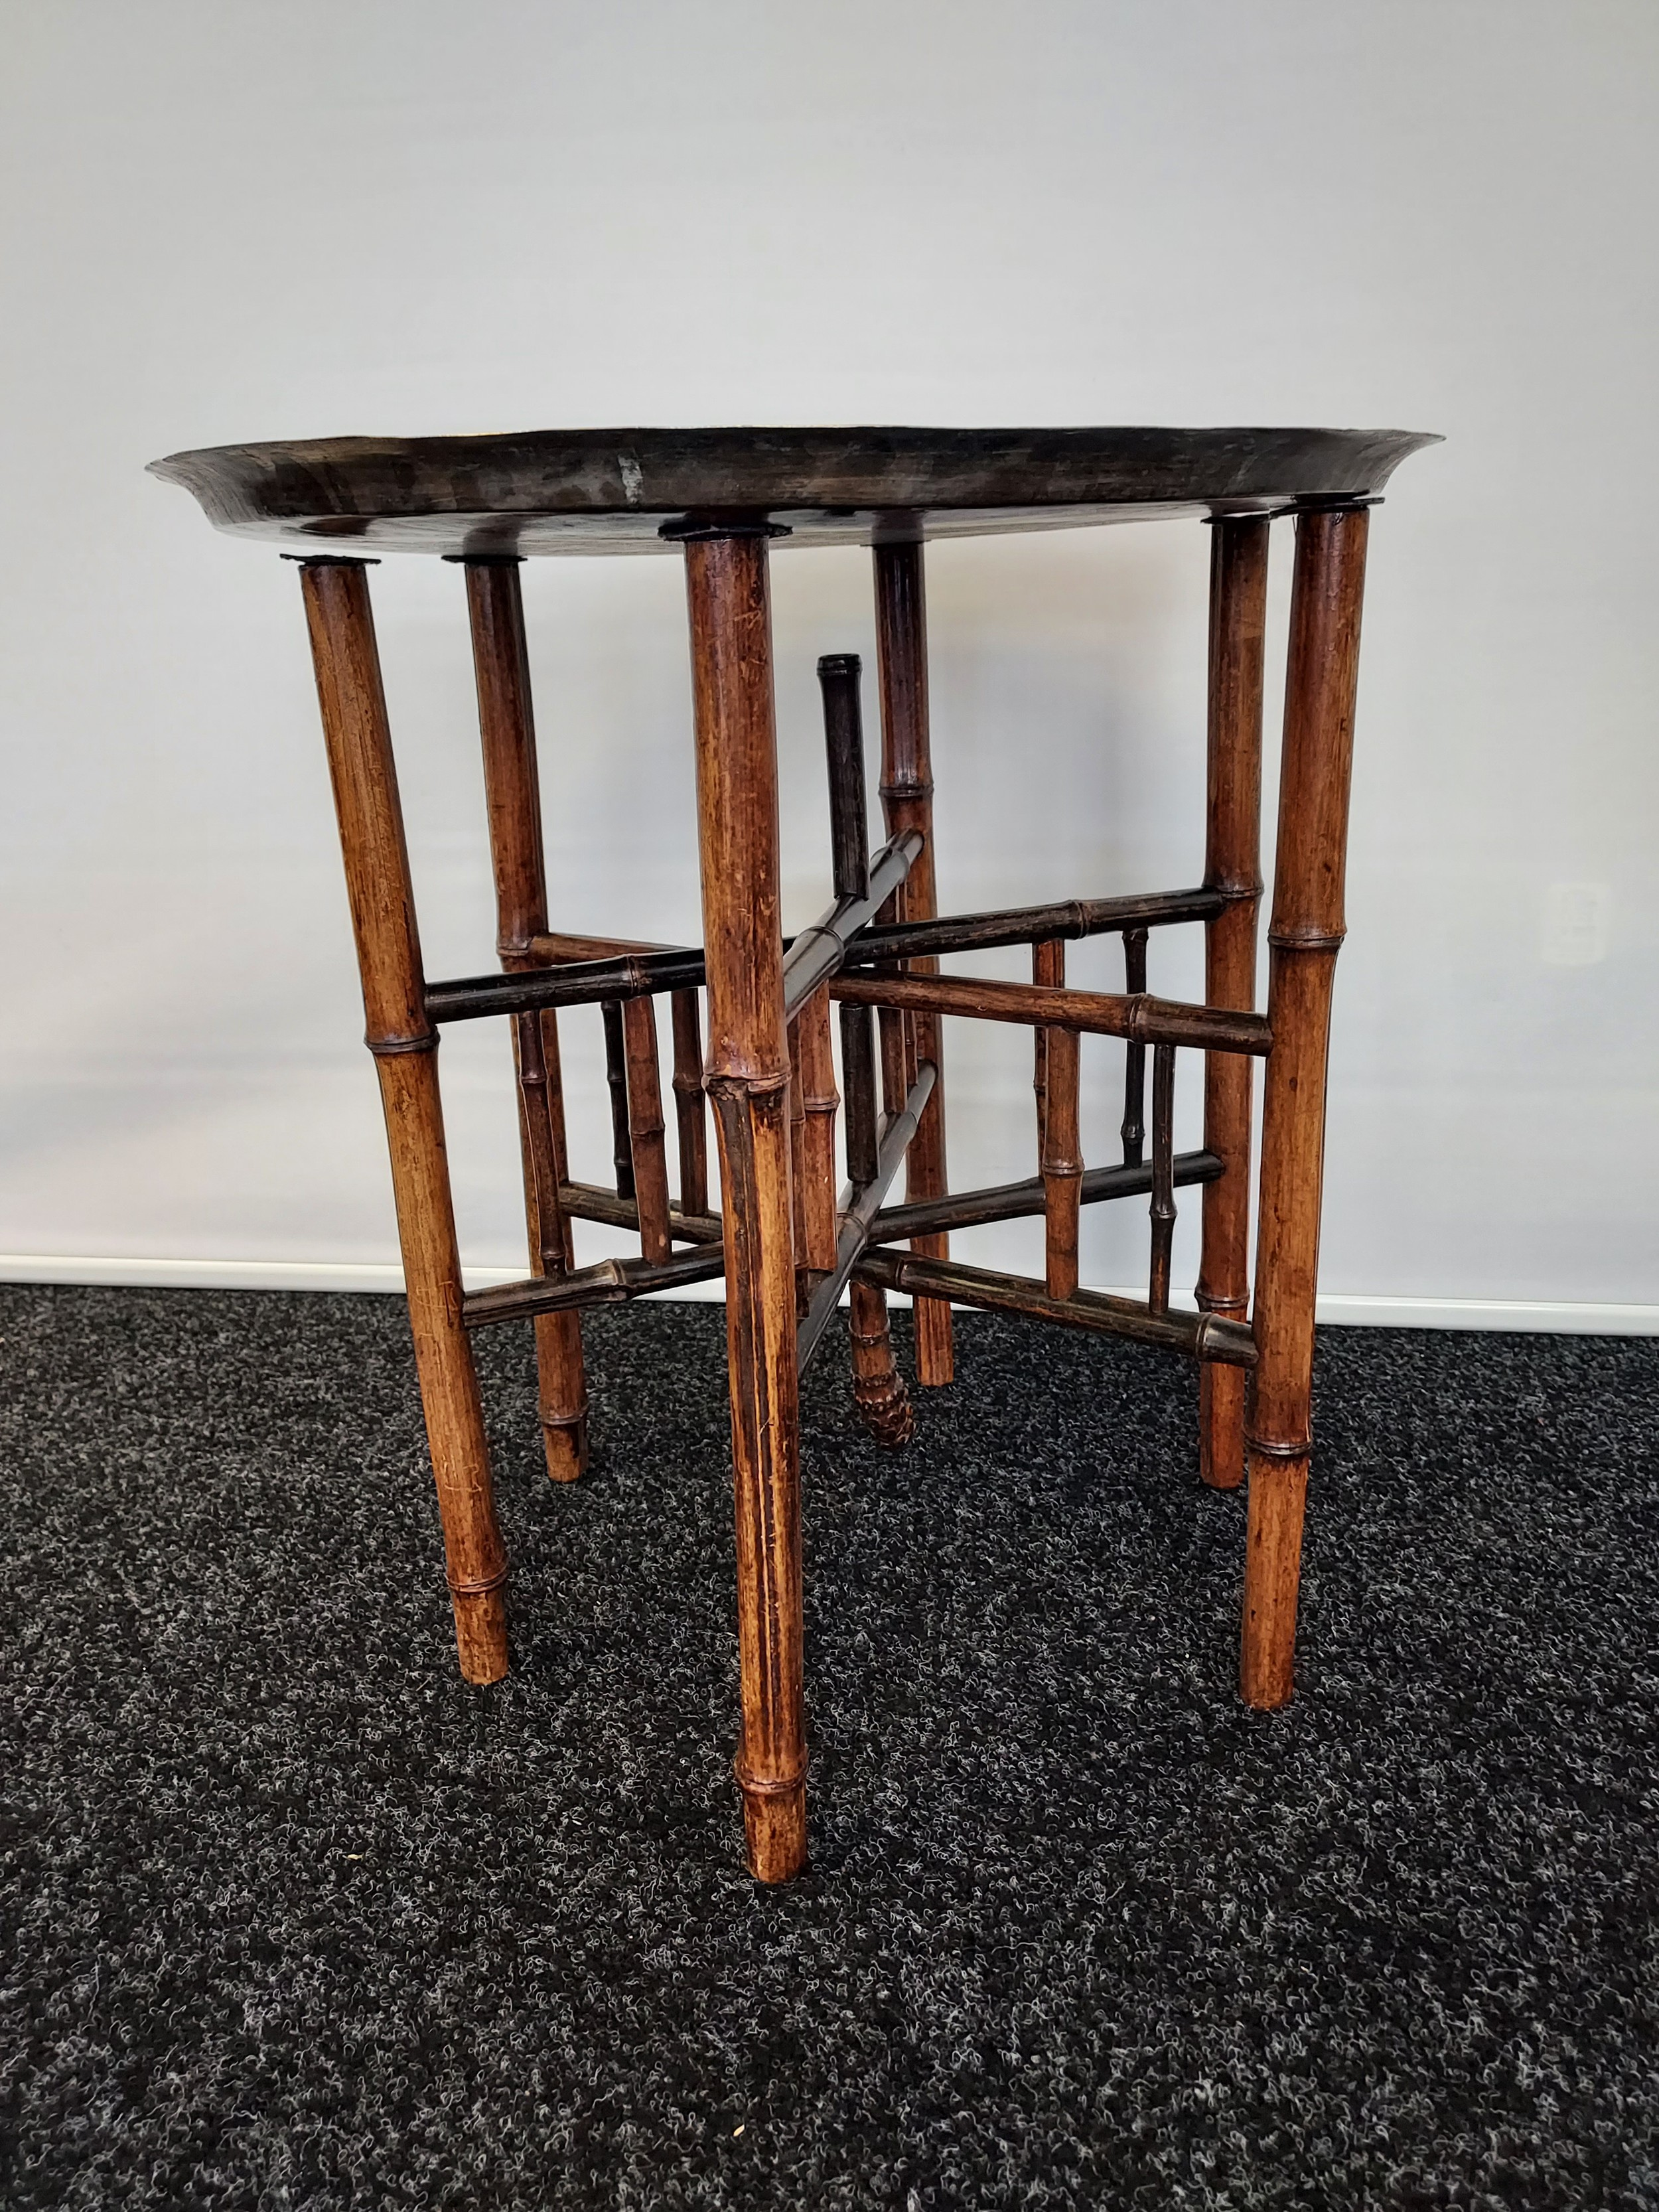 Antique Indian/ Benares decorative brass top wit folding bamboo table legs, Decoratively carved. - Image 4 of 4